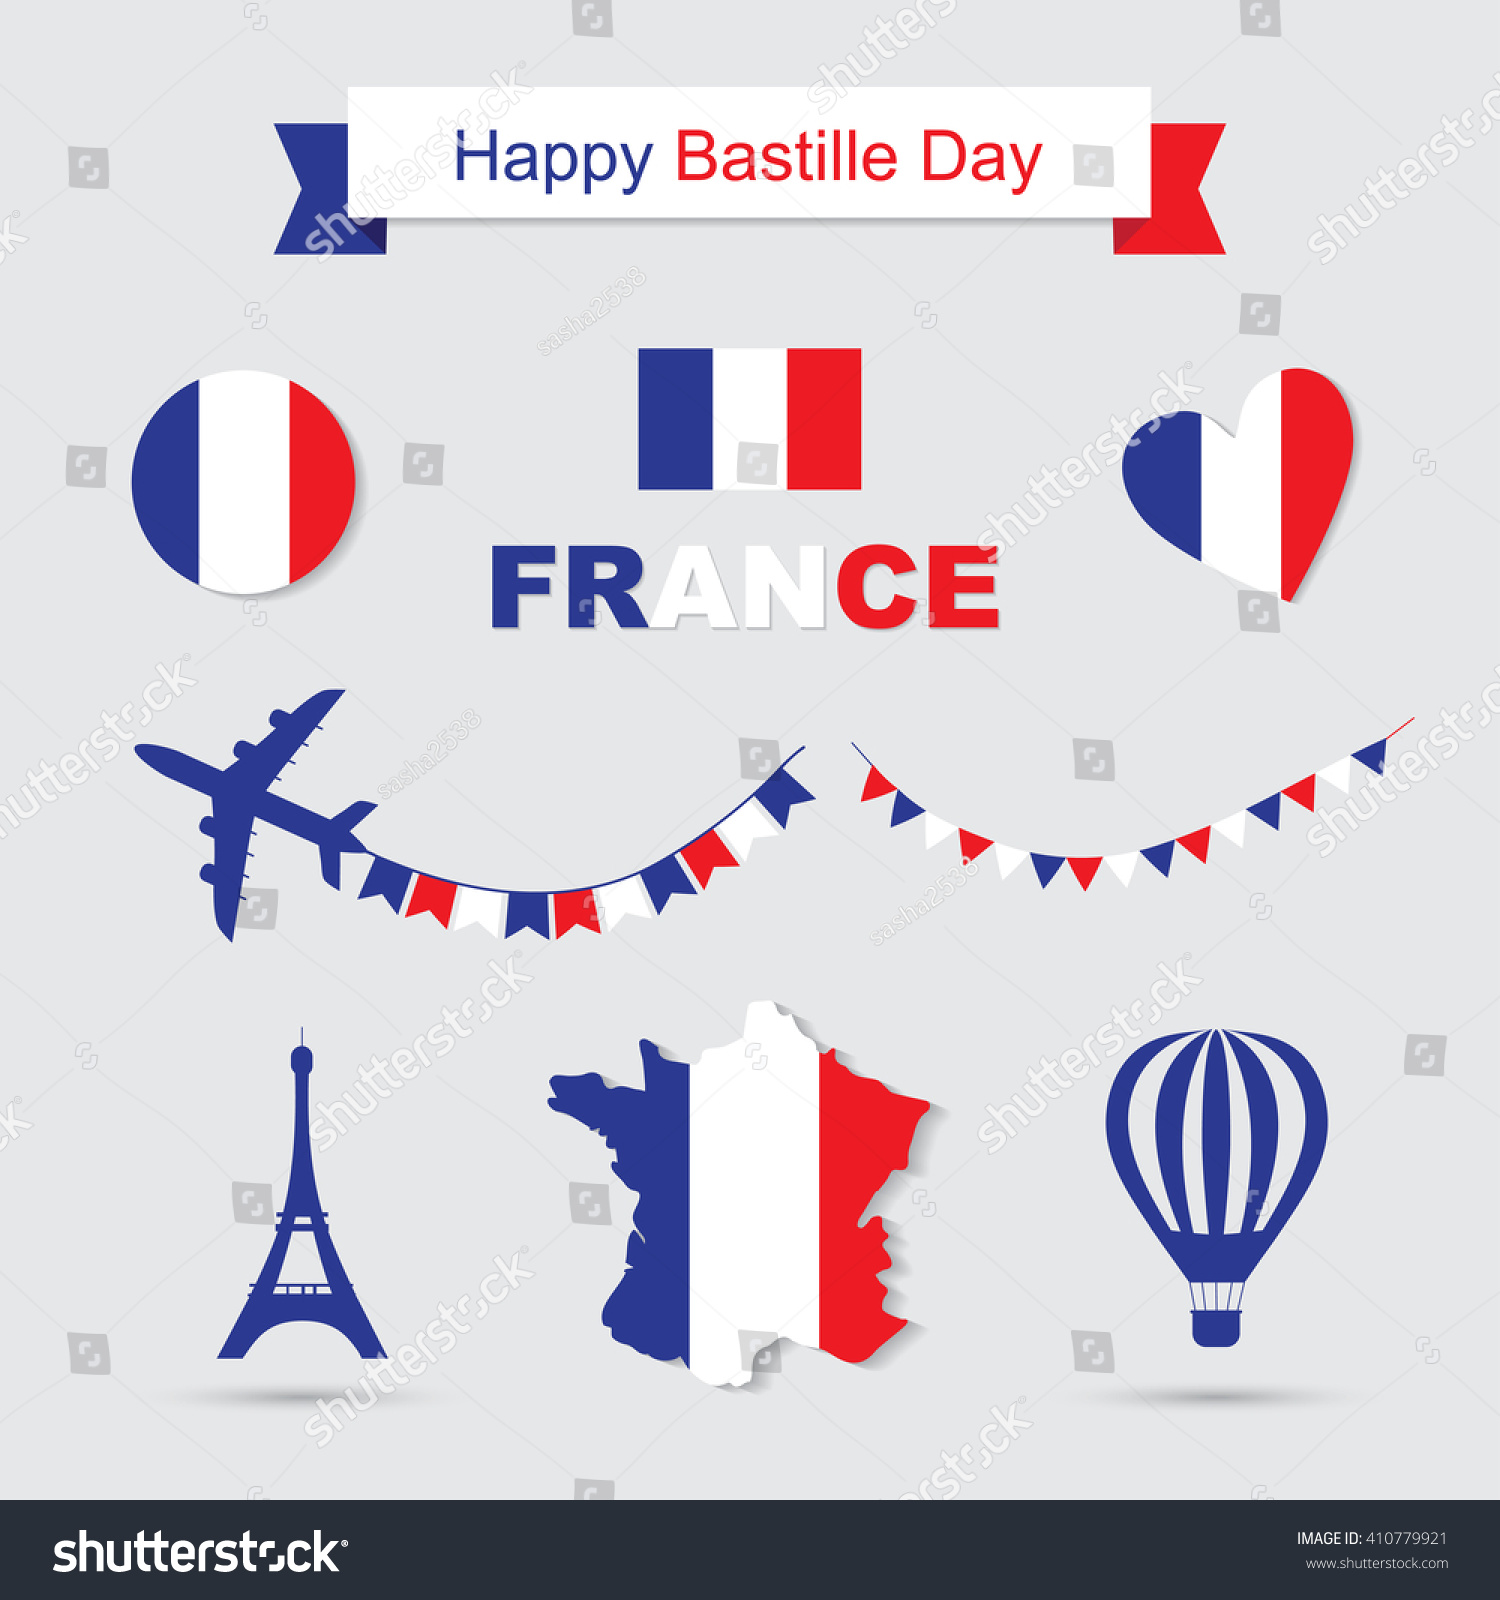 Bastille Day Independence Day France Symbols Stock Vector